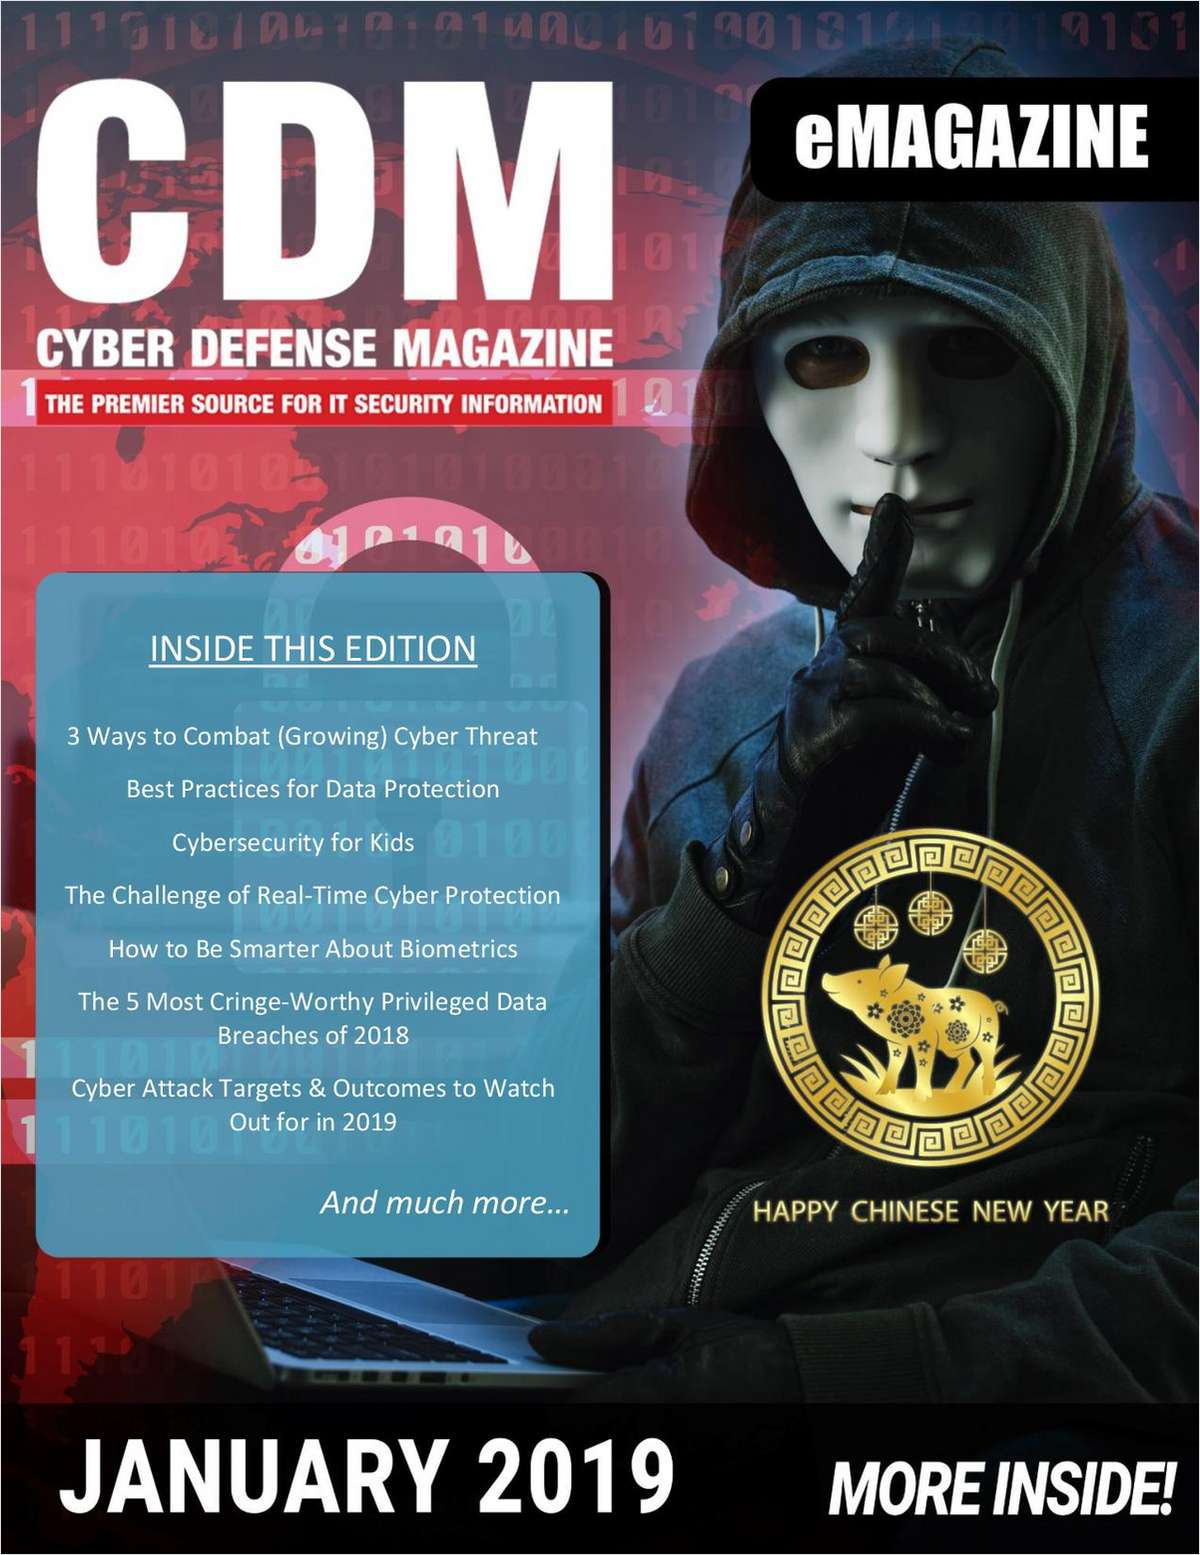 Cyber Defense eMagazine - Best Practices for Data Protection - January 2019 Edition